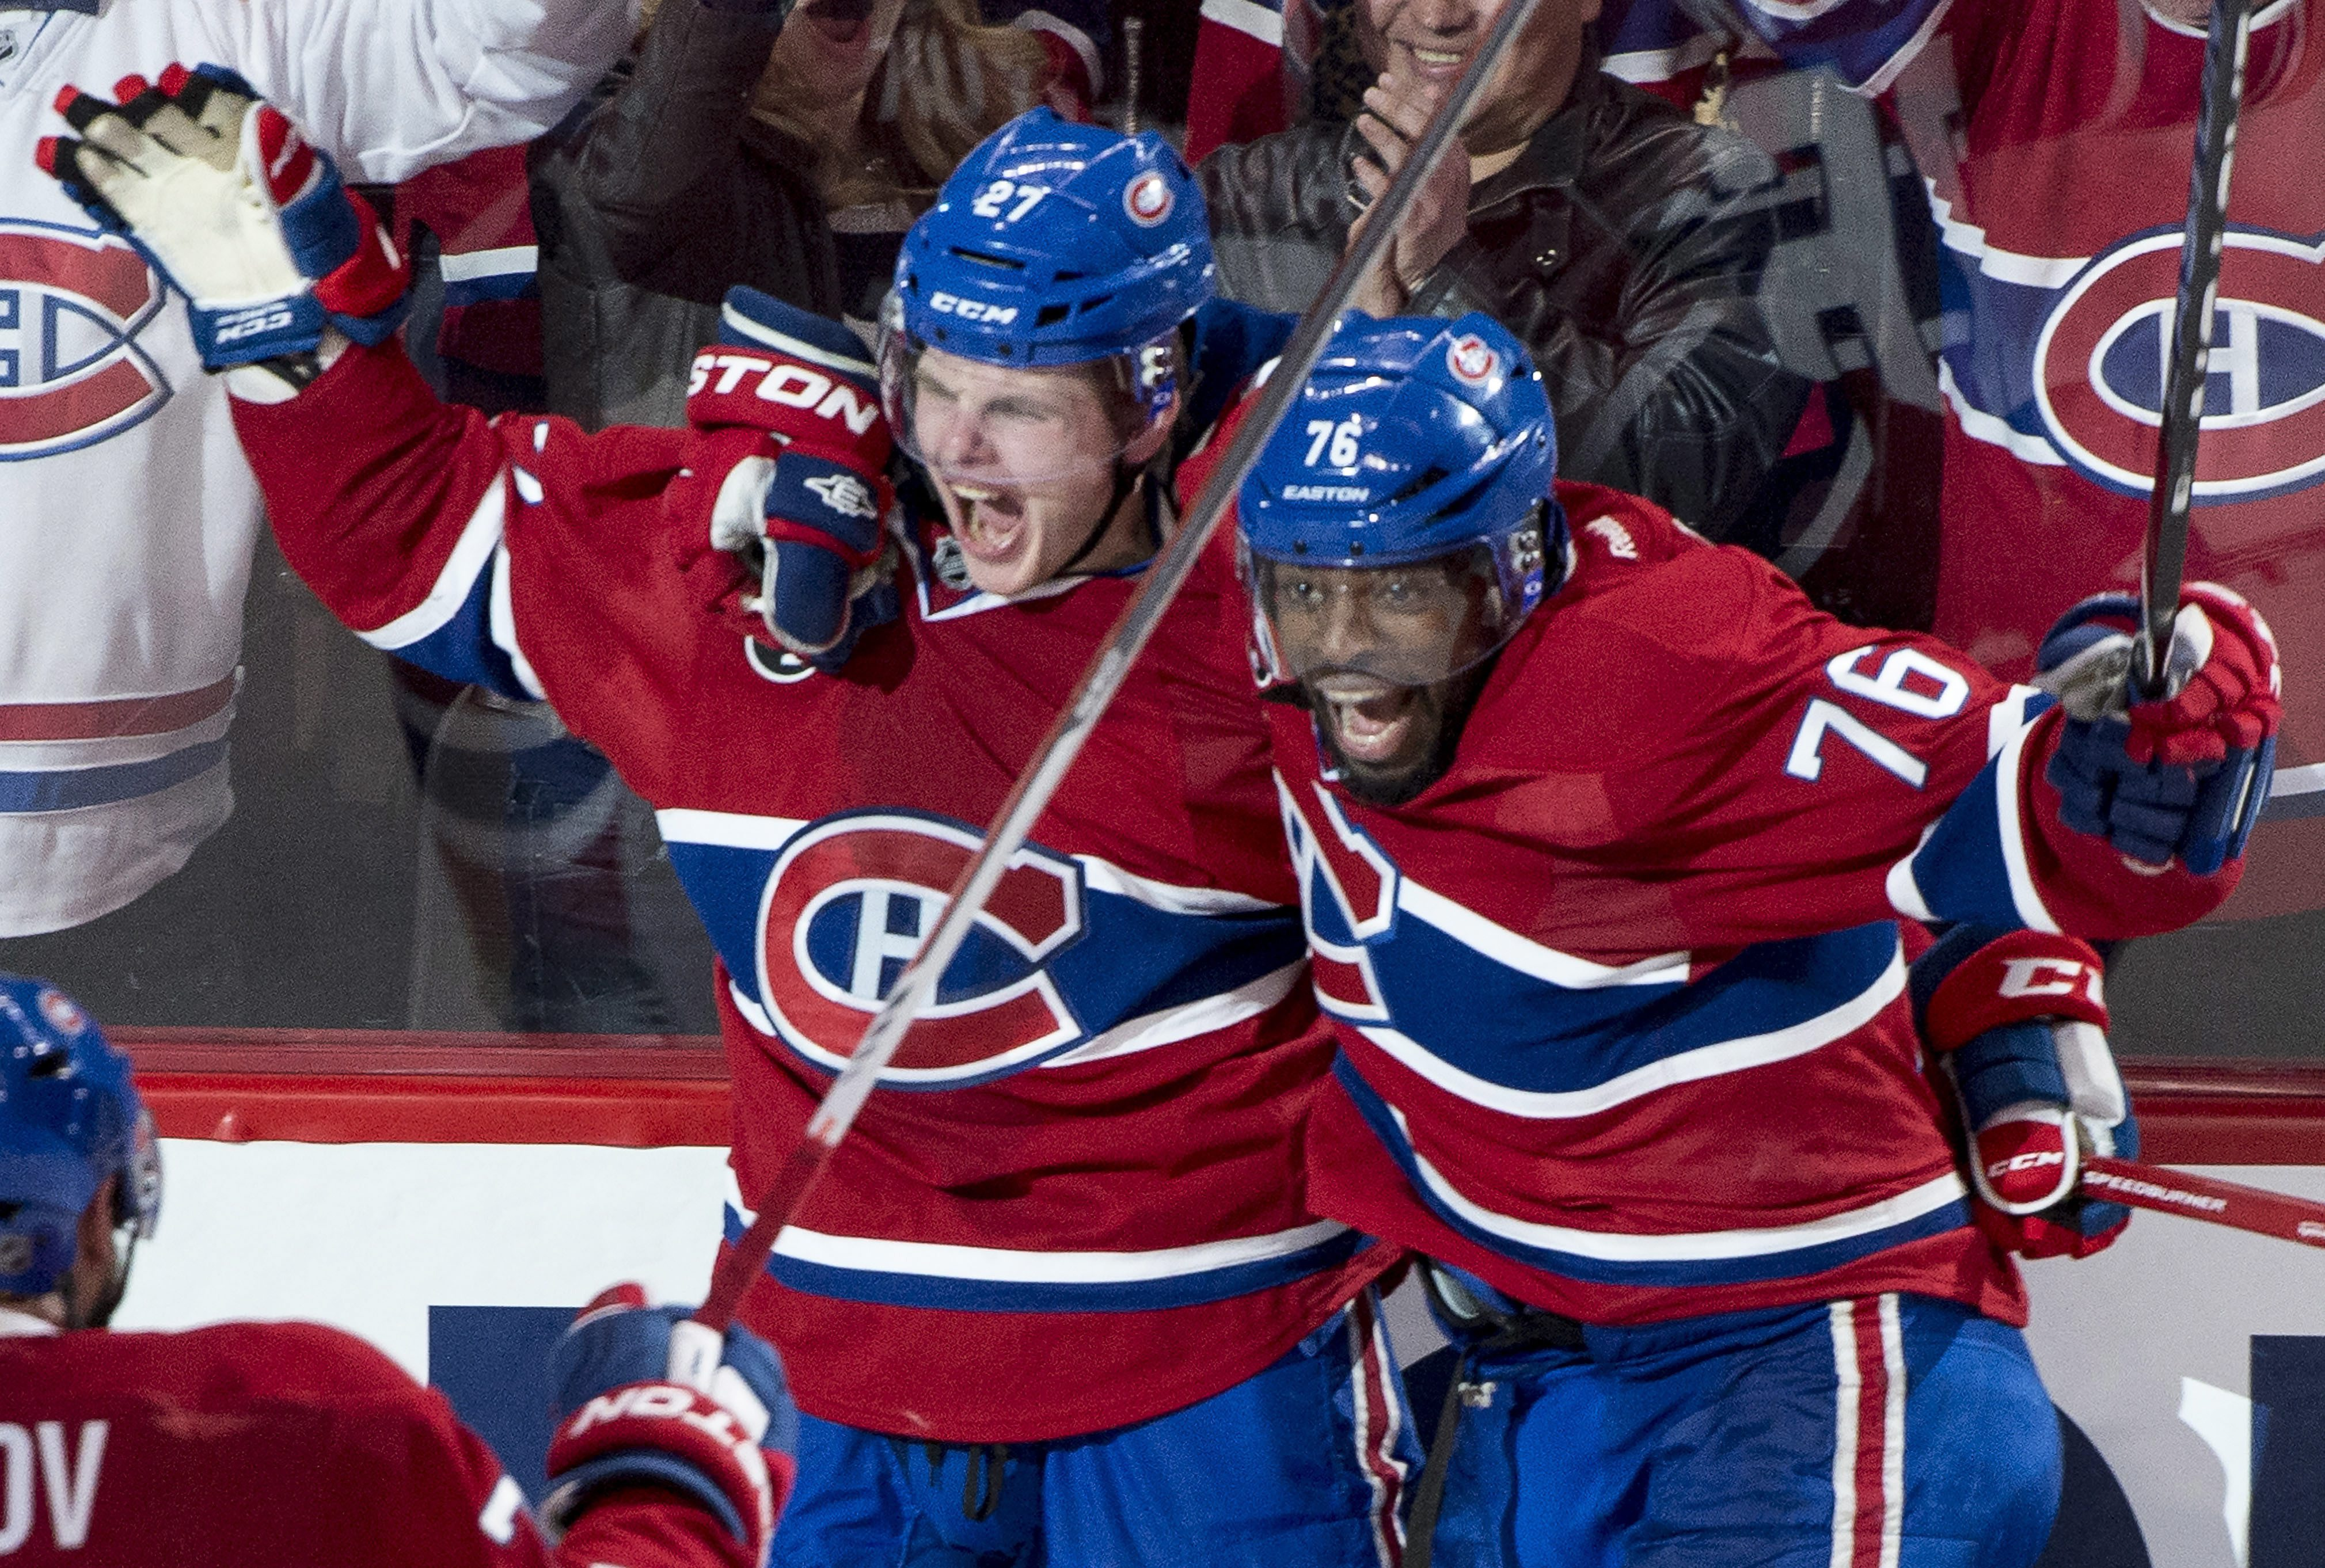 Montreal Canadiens' Alex Galchenyuk, left, celebrates his winning goal over the Ottawa Senators with teammate P.K. Subban during first period overtime in Game 2 of an NHL hockey first-round playoff series, Friday, April 17, 2015 in Montreal. (Paul Chiasso